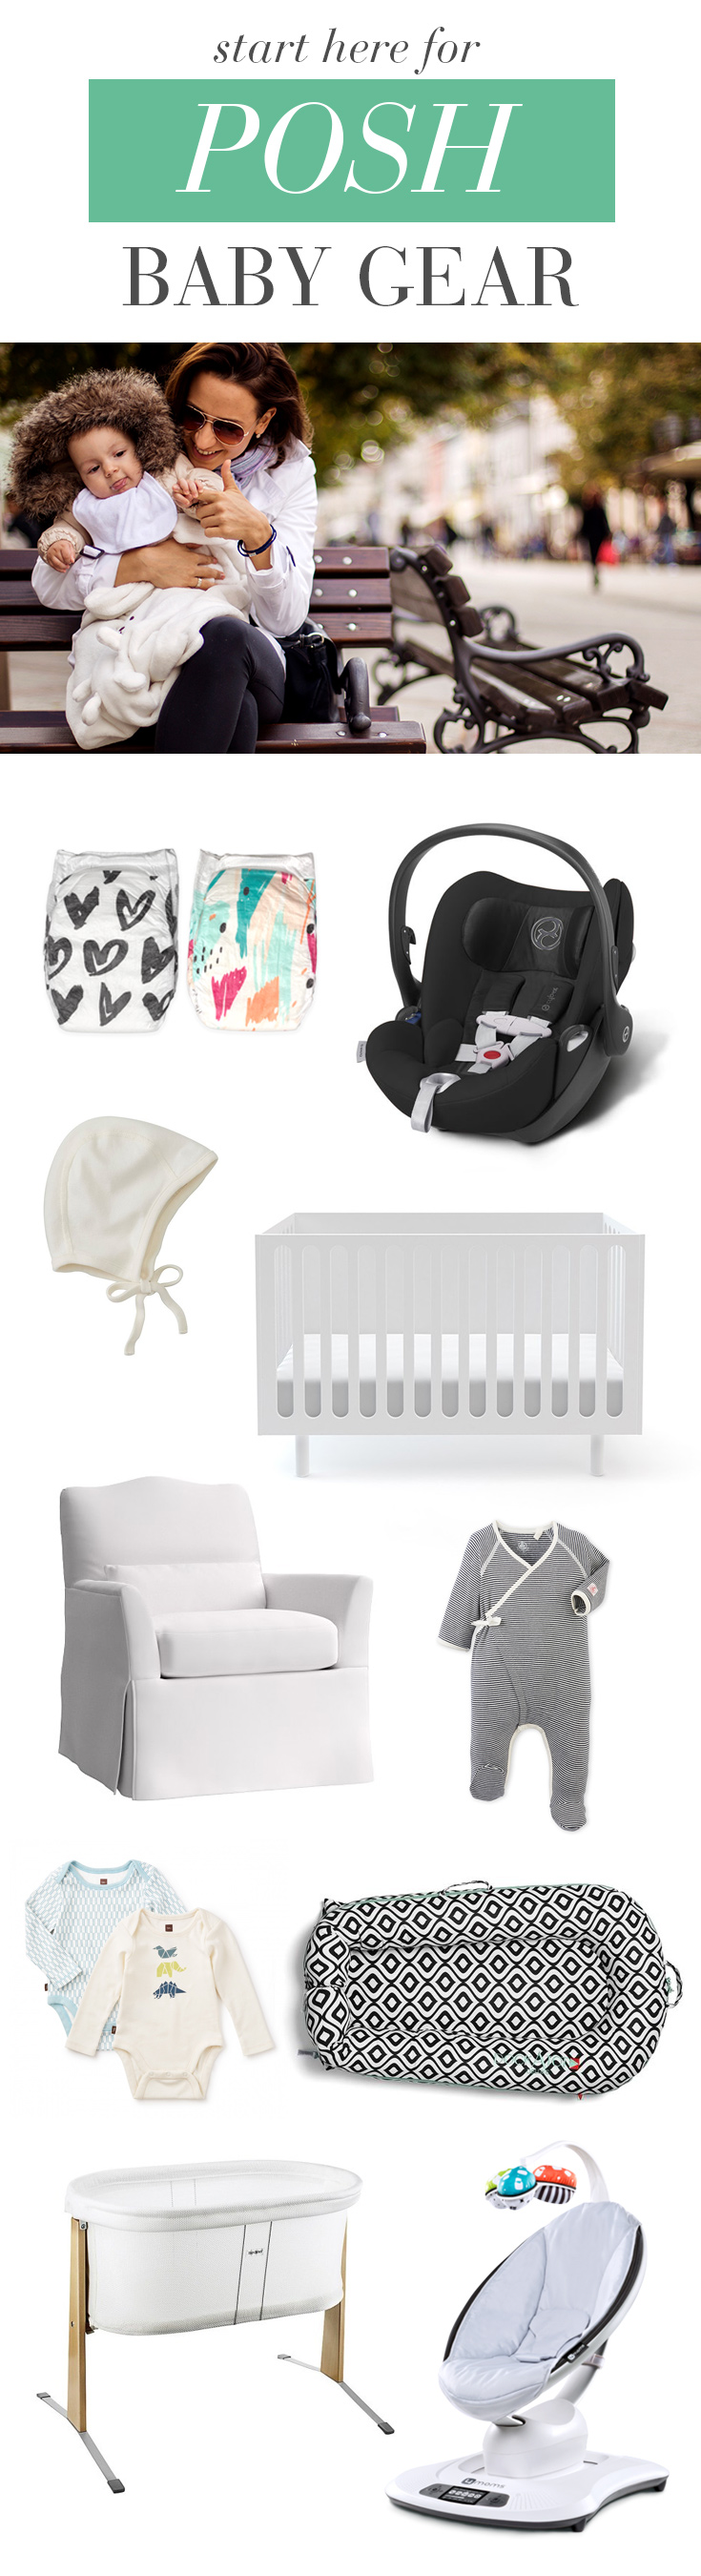 Start here if you're looking for luxury baby gear from all the best brands for your baby registry.